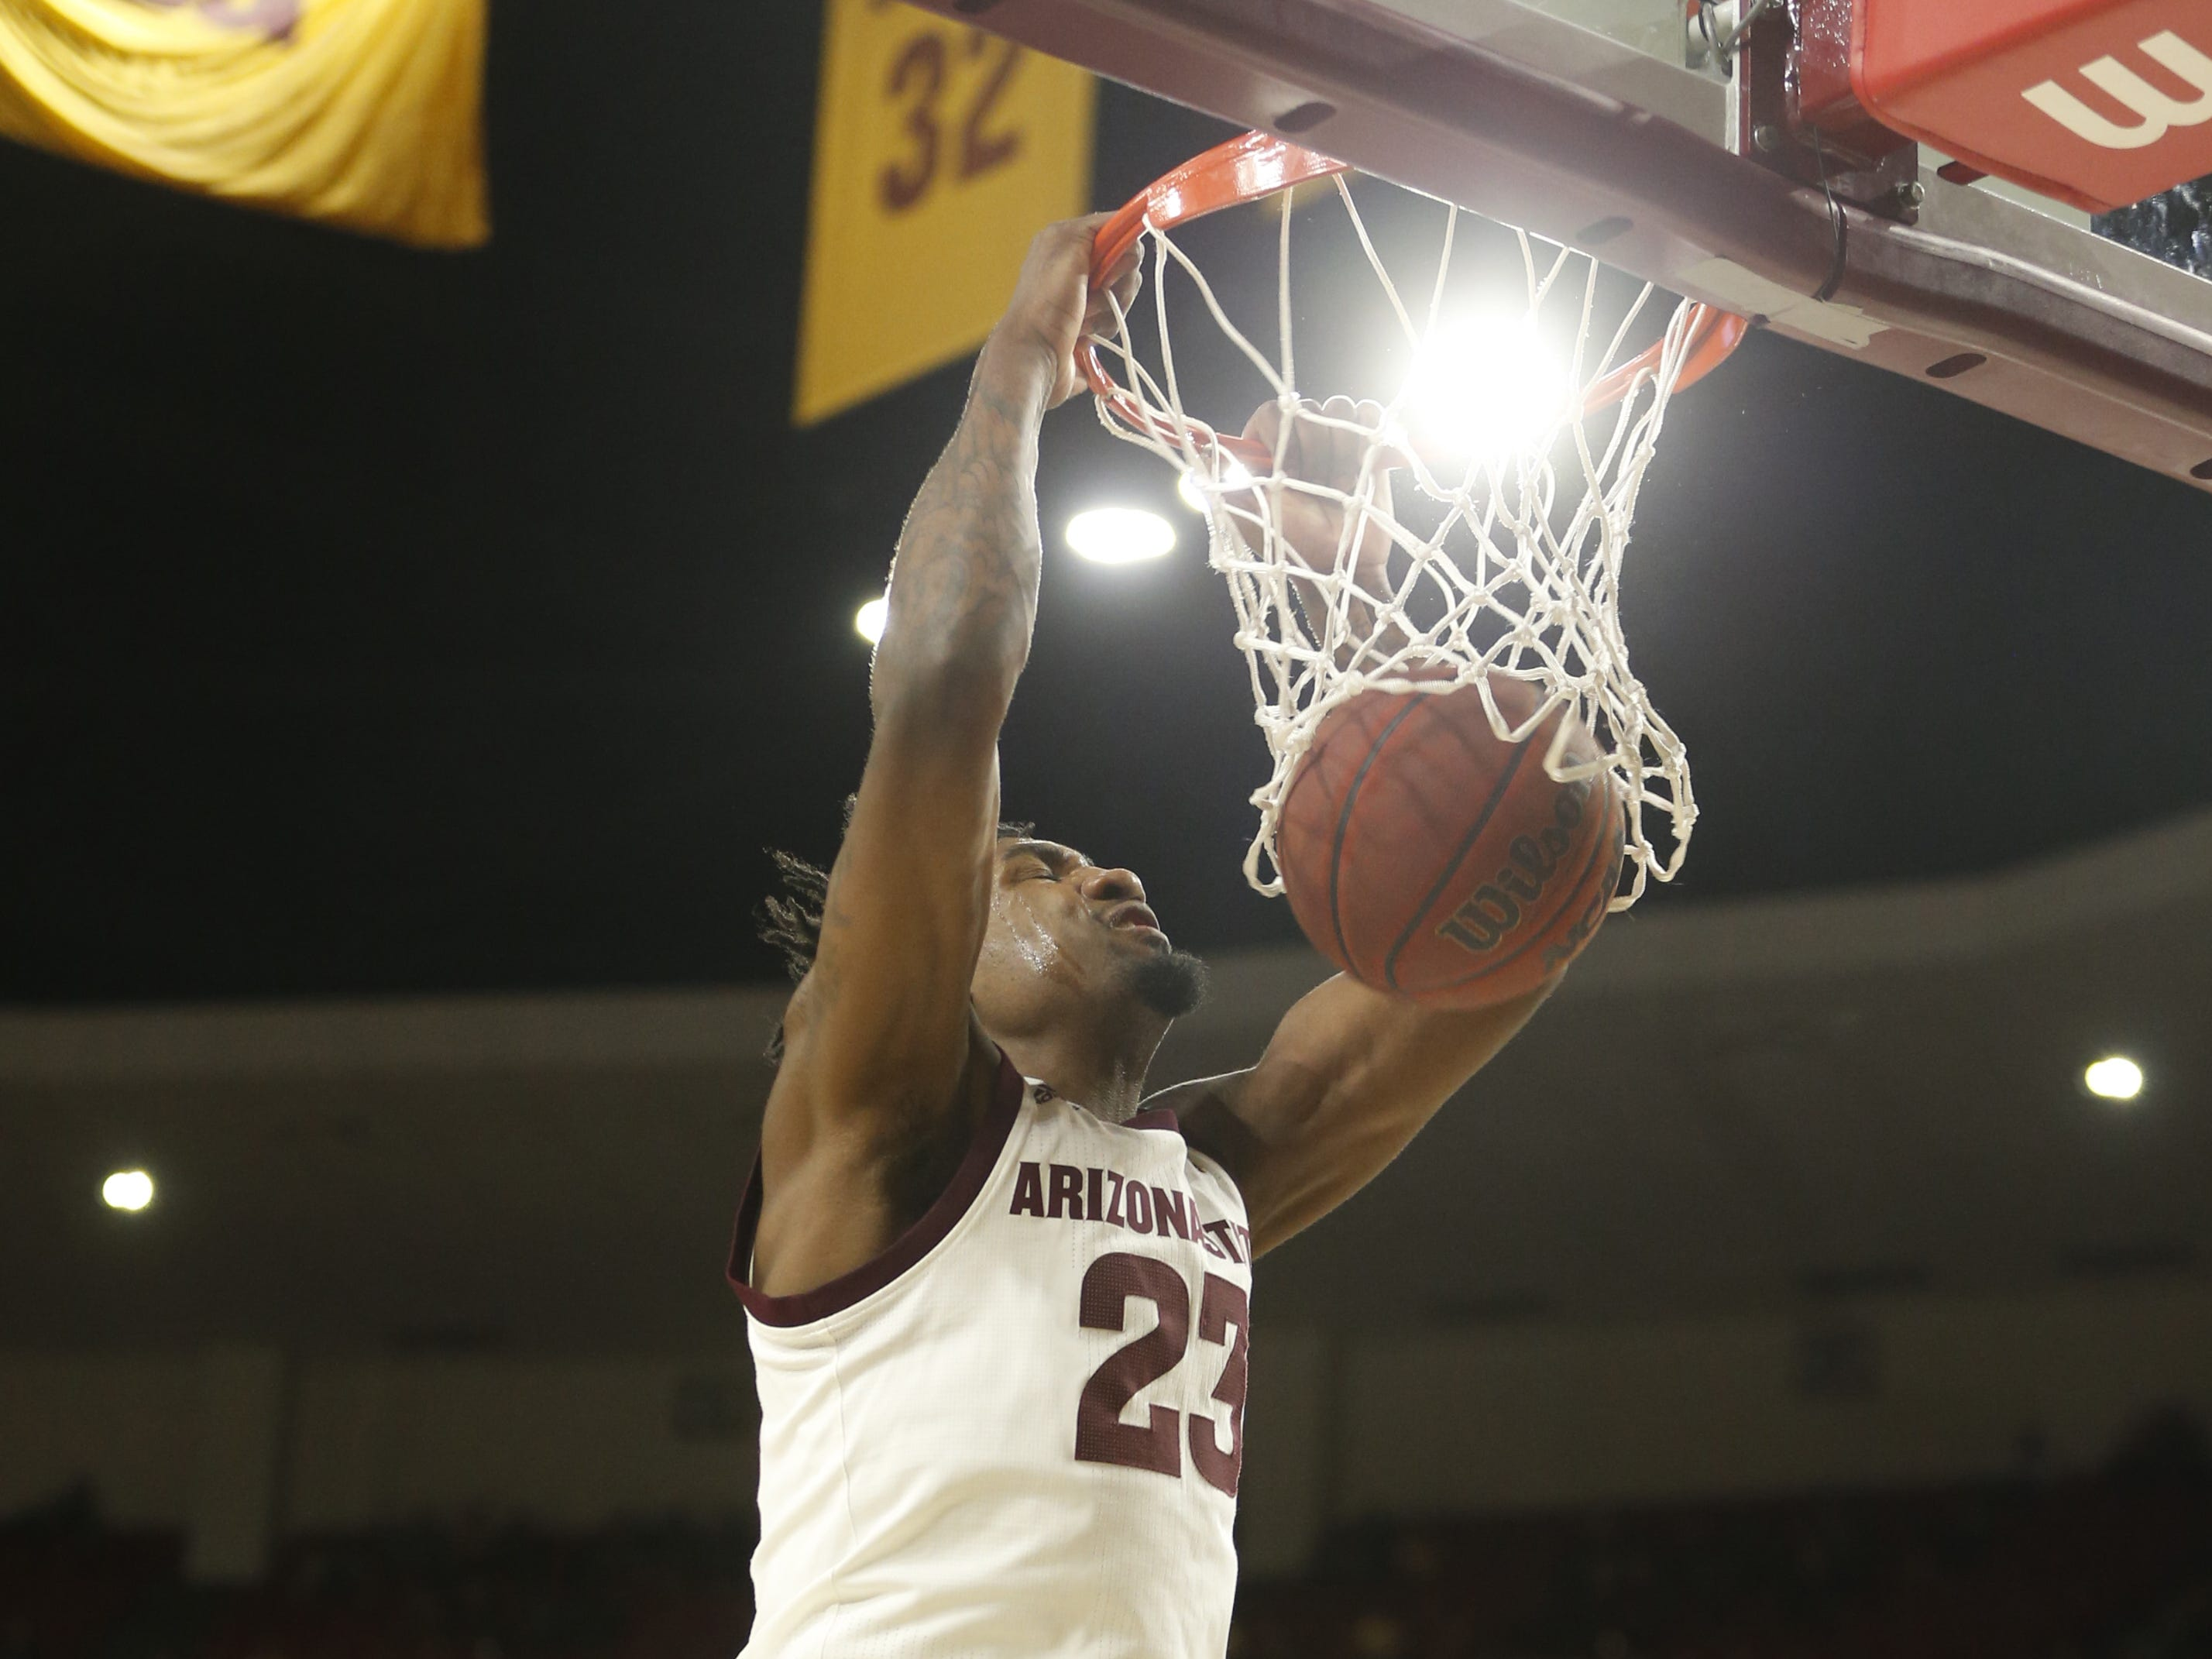 ASU's Romello White (23) dunks against Princeton during the first half at Wells Fargo Arena in Tempe, Ariz. on December 29, 2018.